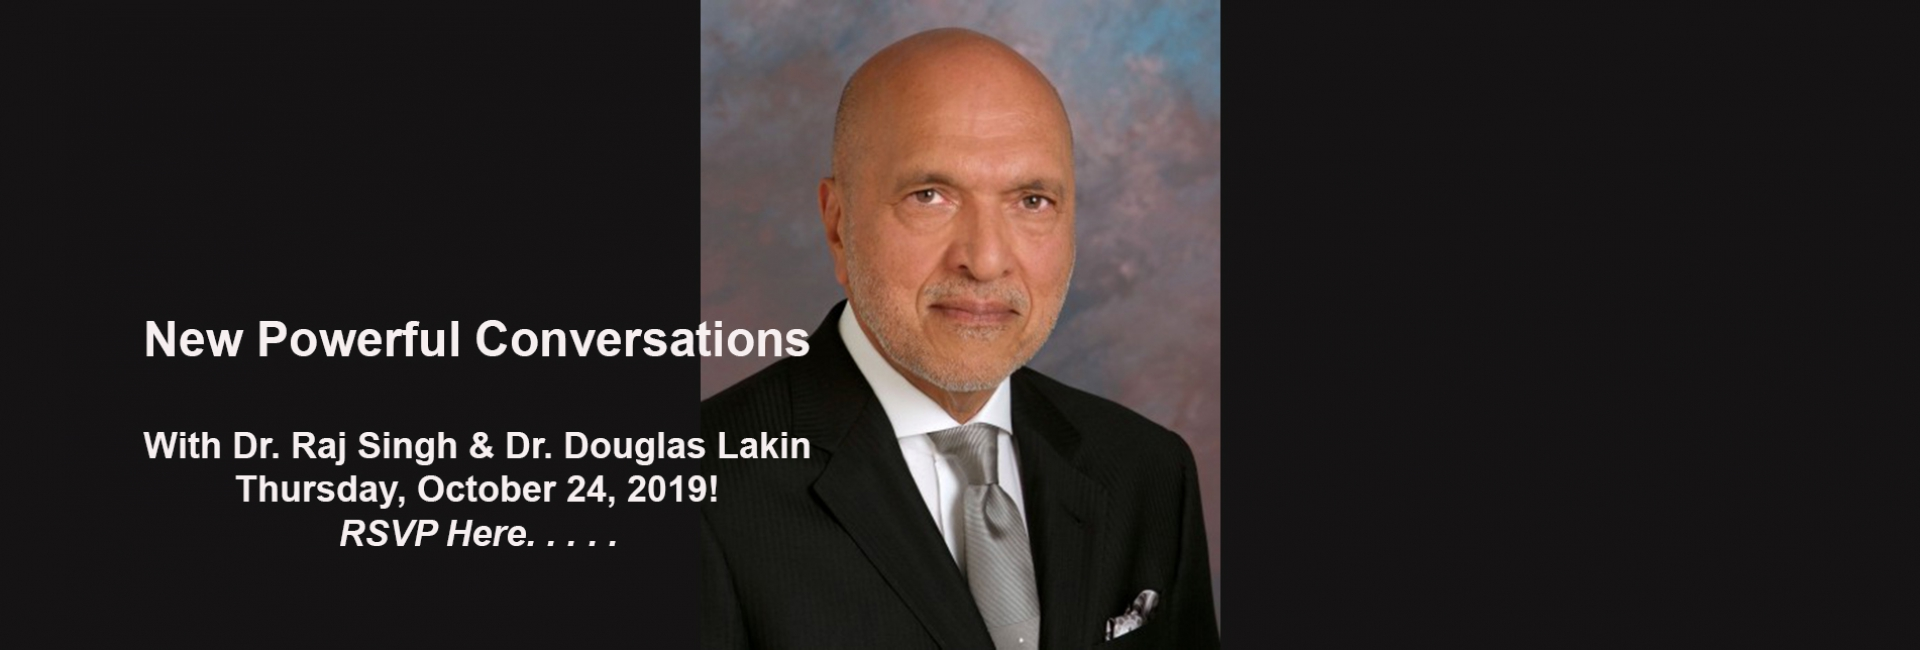 POWERFUL CONVERSATIONS WITH DR LAKIN & DR SINGH, THURSDAY, OCTOBER 24TH!